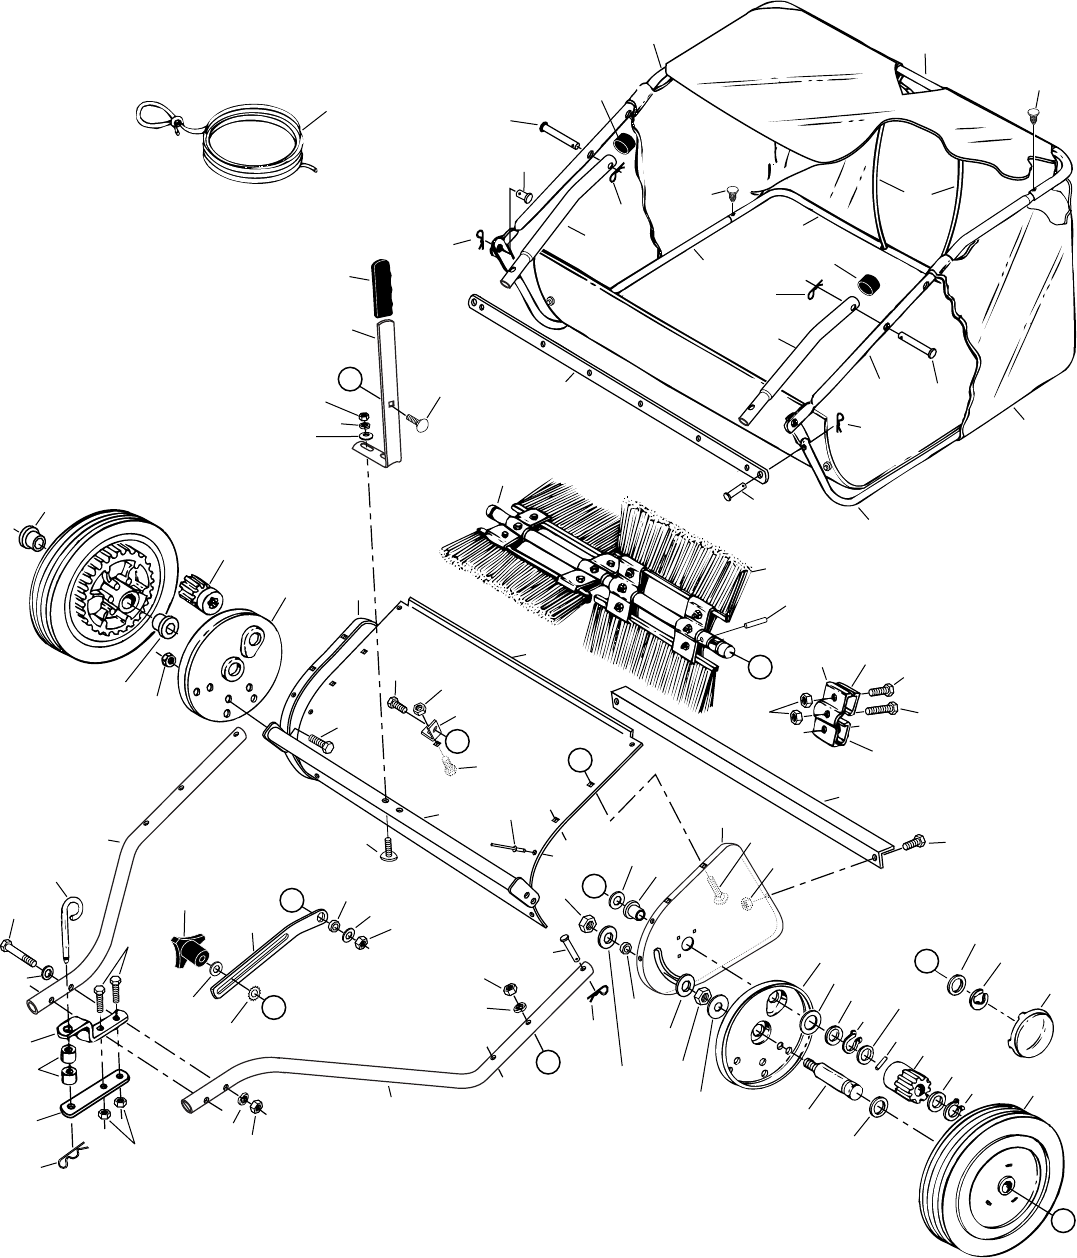 Lawn Sweeper Parts : Craftsman inch lawn sweeper parts list